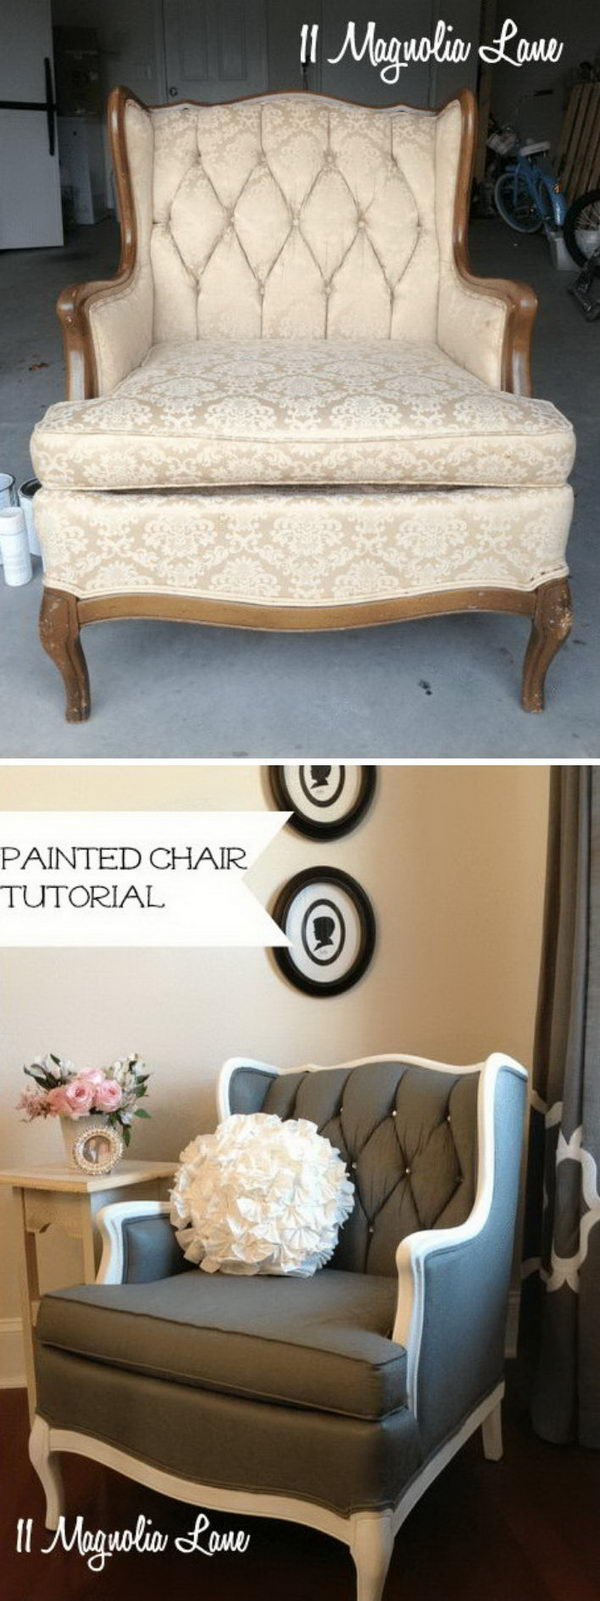 Completely Transform a Chair with Paint.